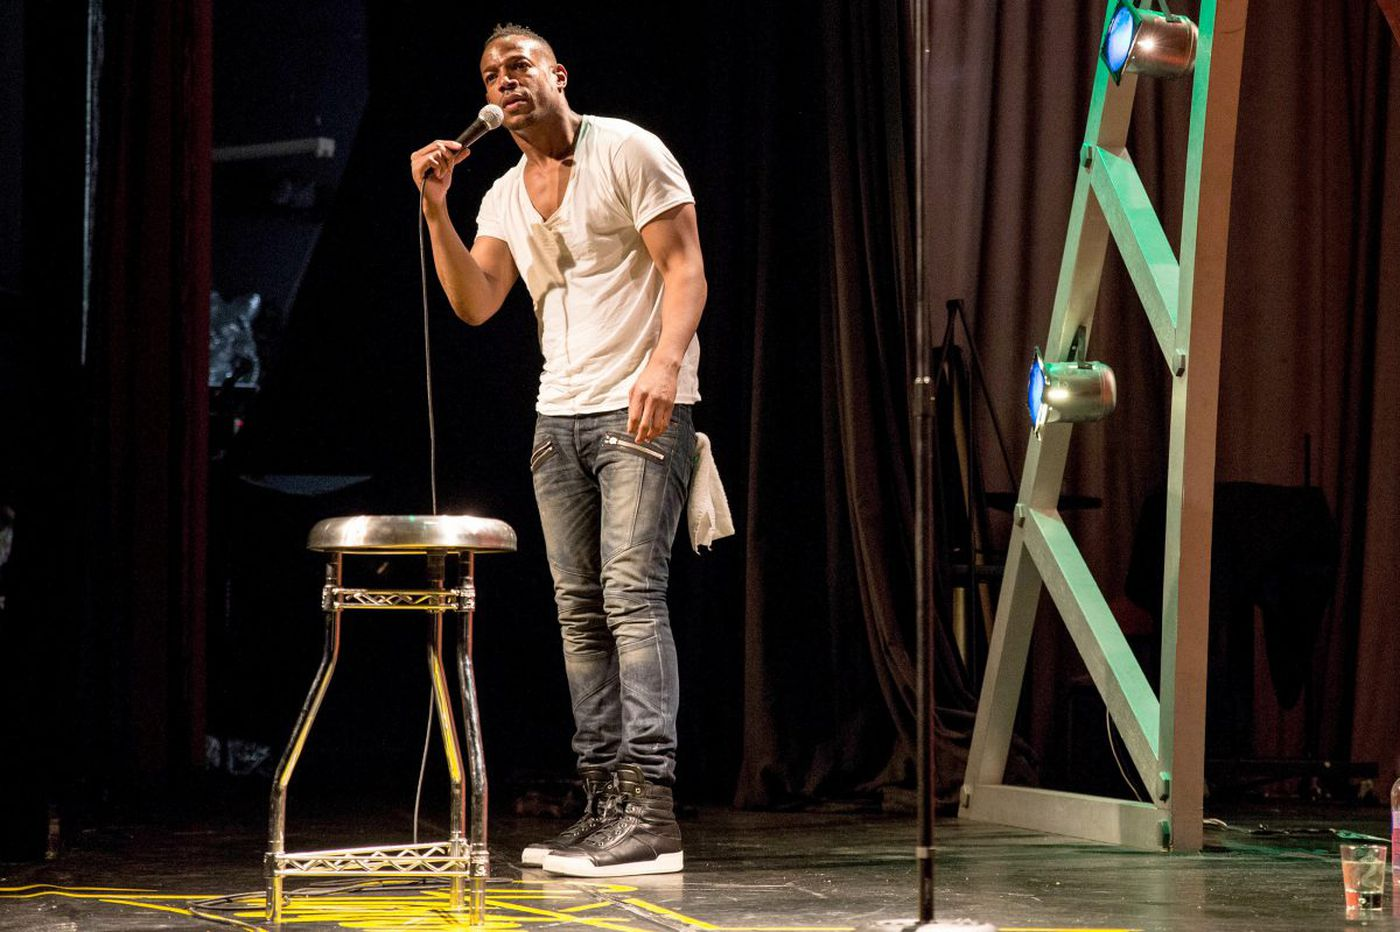 Marlon Wayans hits Philly for a rare stand of stand-up